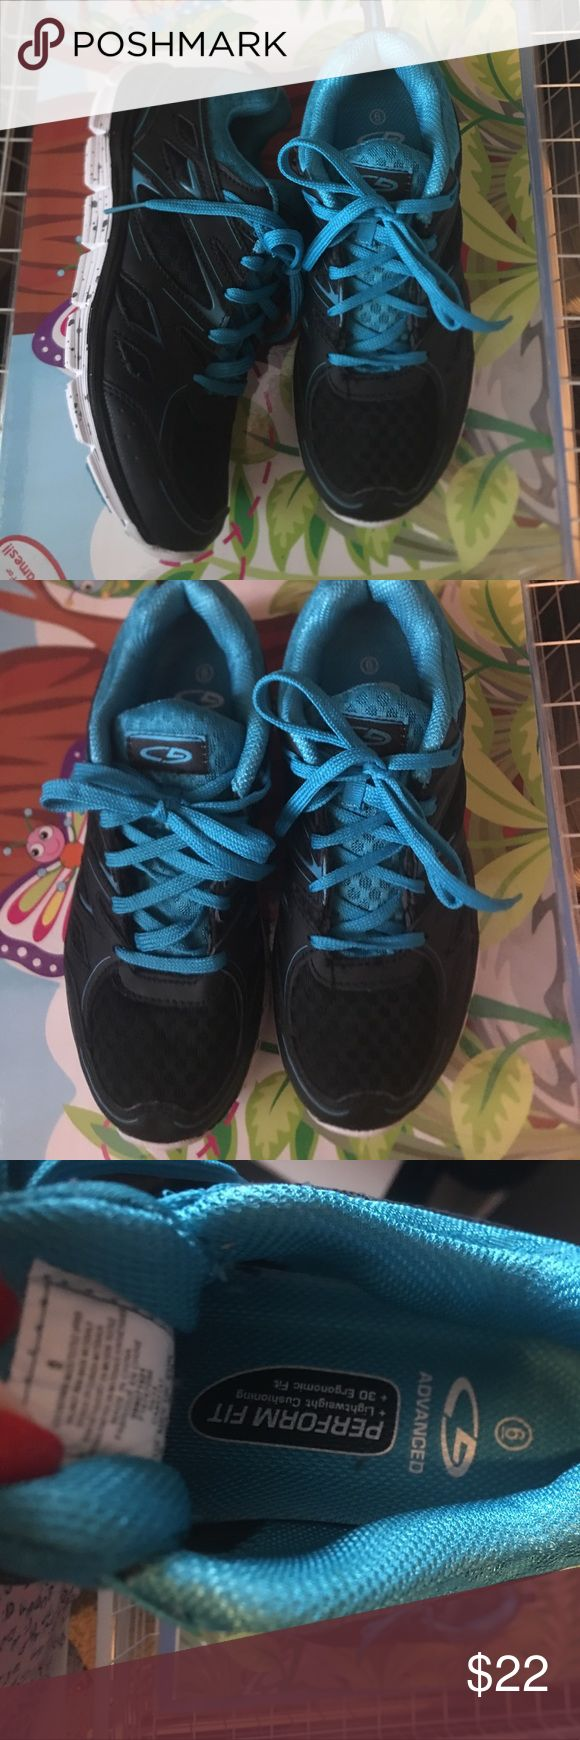 Ladies sneakers Ladies super light sneakers great for running or working out size 6 never worn Shoes Sneakers